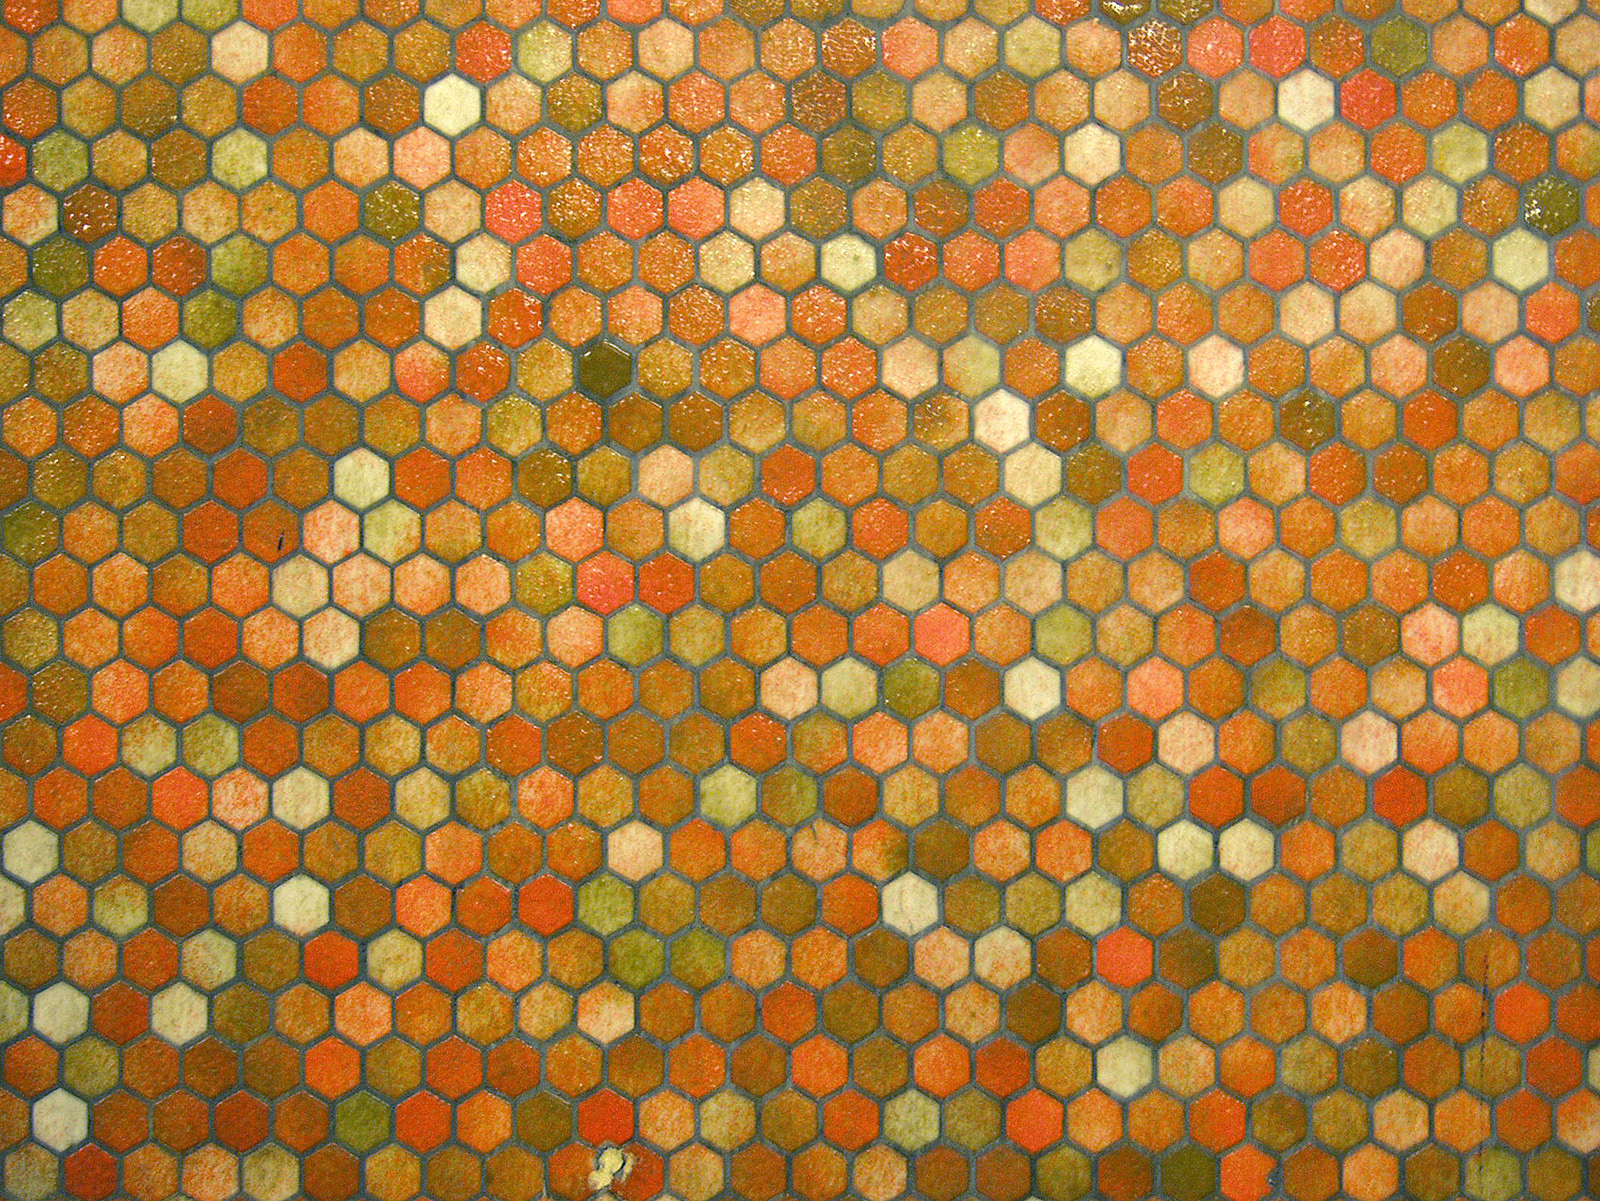 mosaic, texture, download photo, background, mosaic texture, background